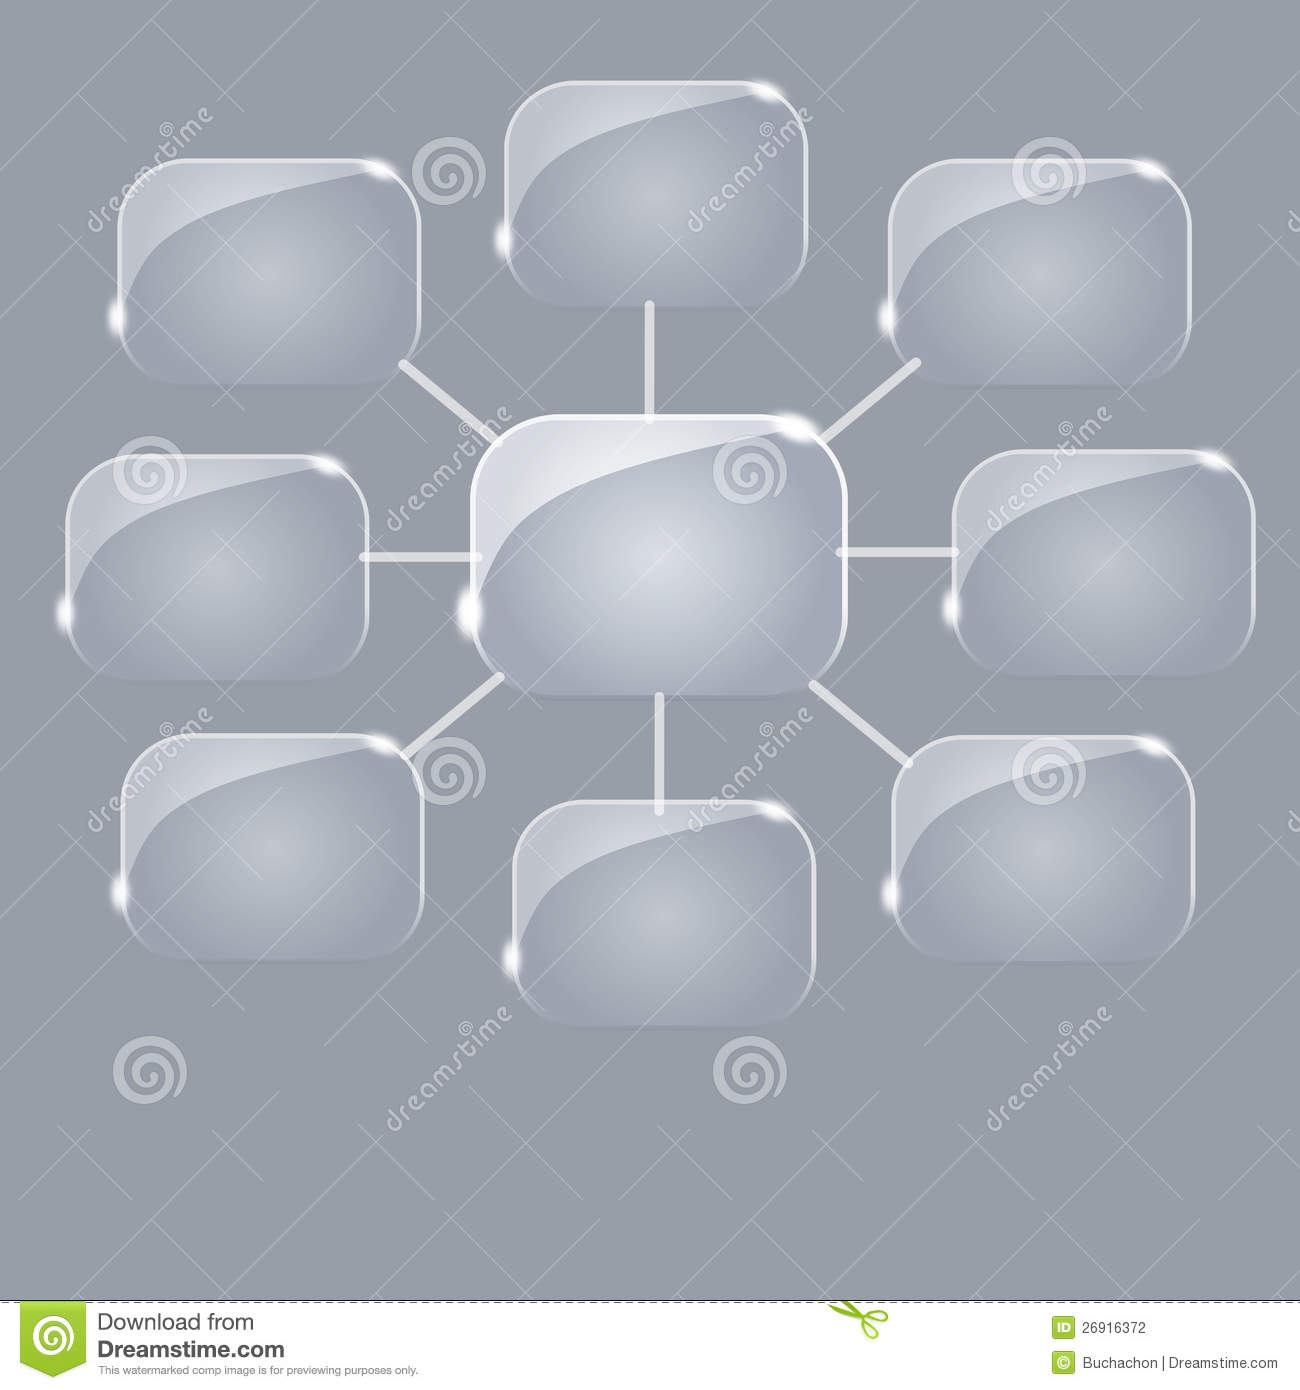 Empty Flow Chart Diagram Stock Photography - Image: 26916372